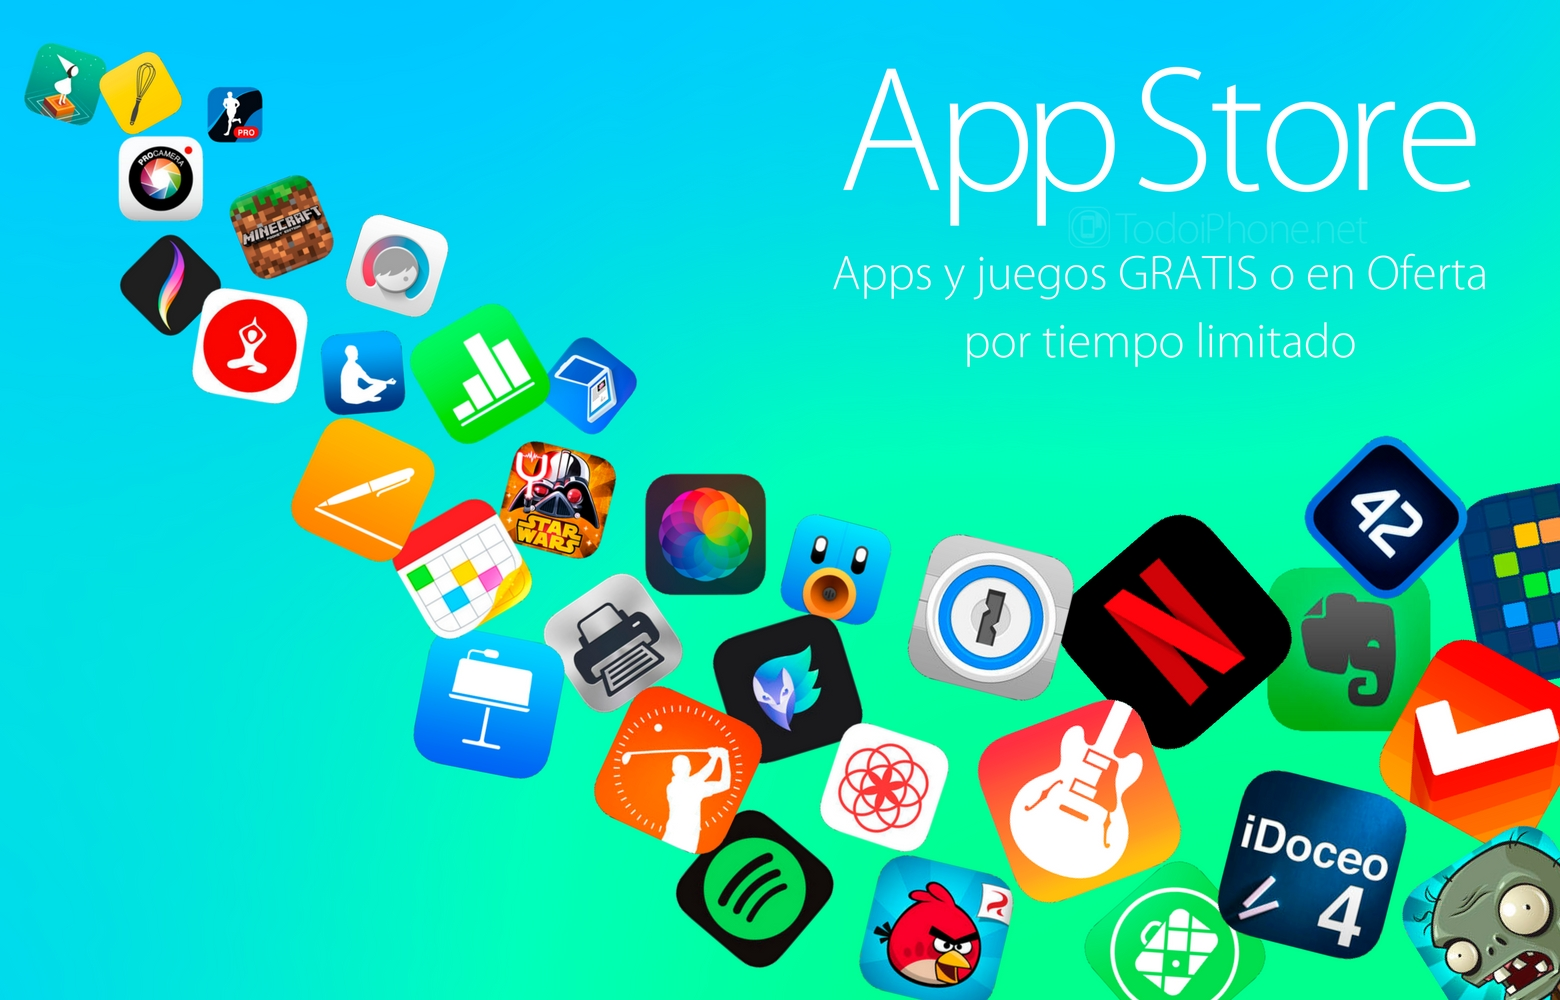 apps-juegos-ipad-iphone-oferta-gratis-2016-jpg